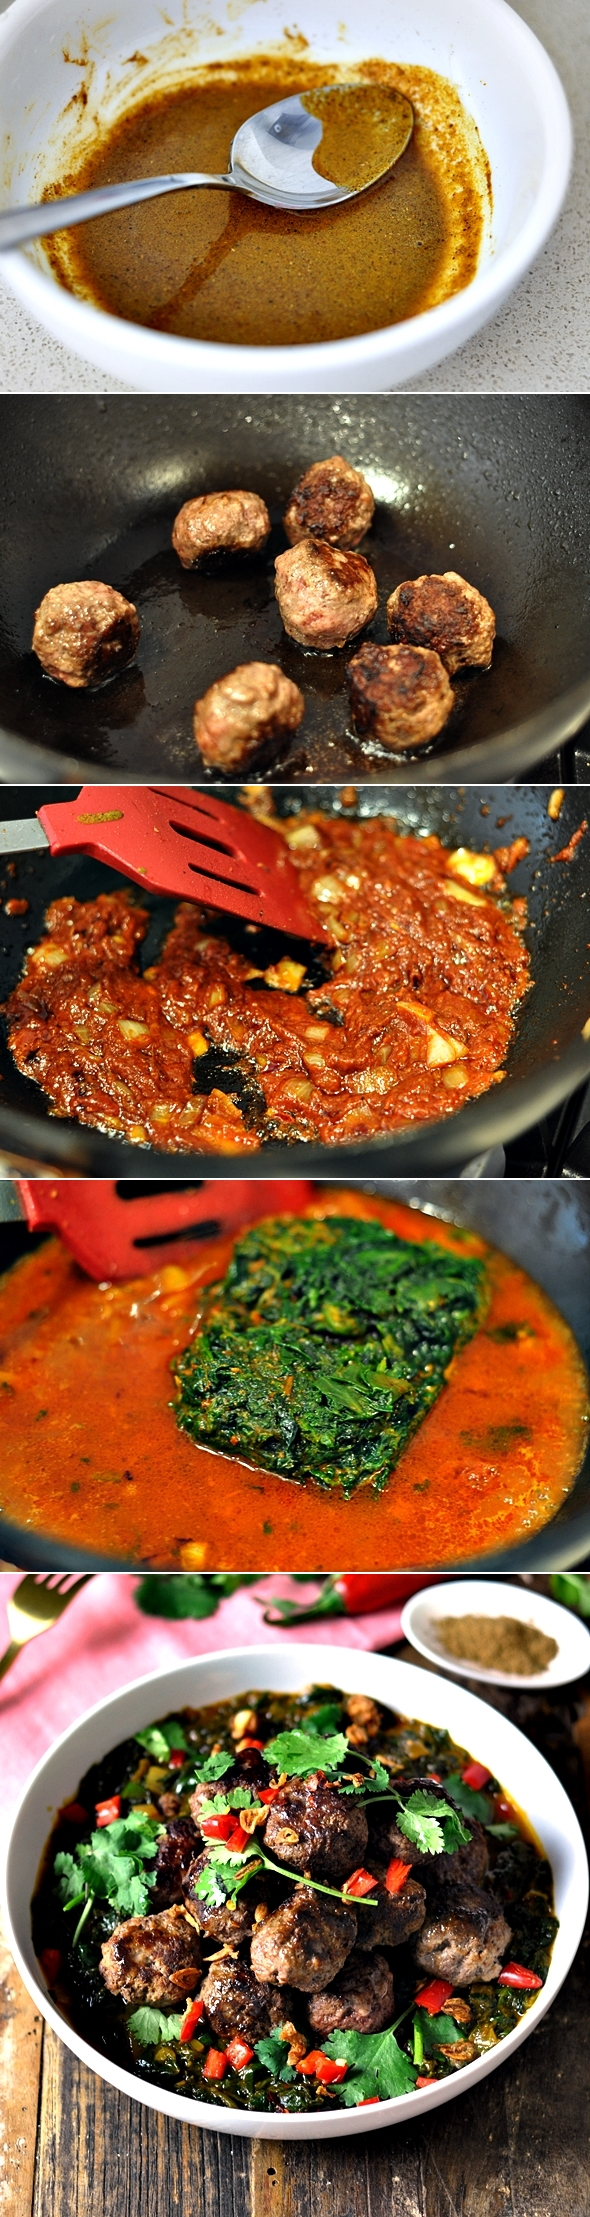 Beef Kofta Spinach Curry | www.fussfreecooking.com